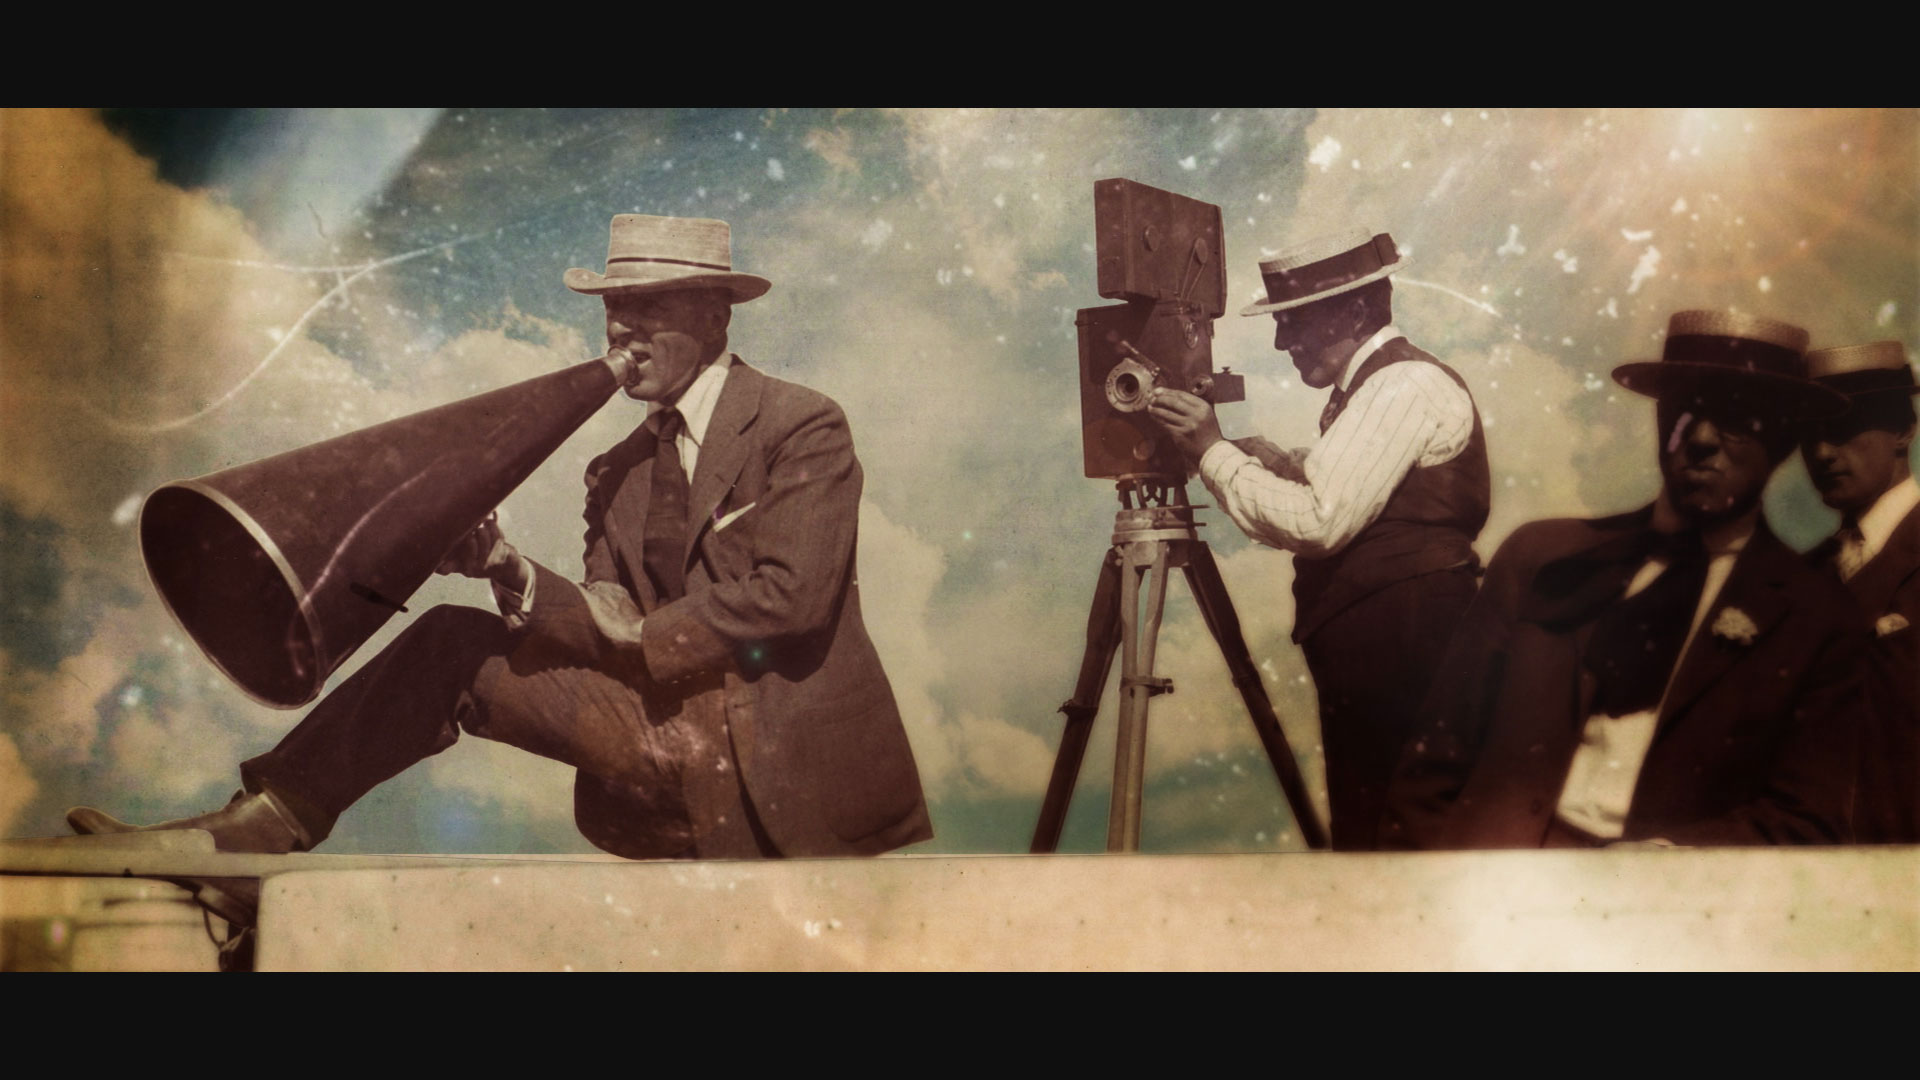 Still from Birth of a Movement, of DW Griffith on set directing a film with megaphone